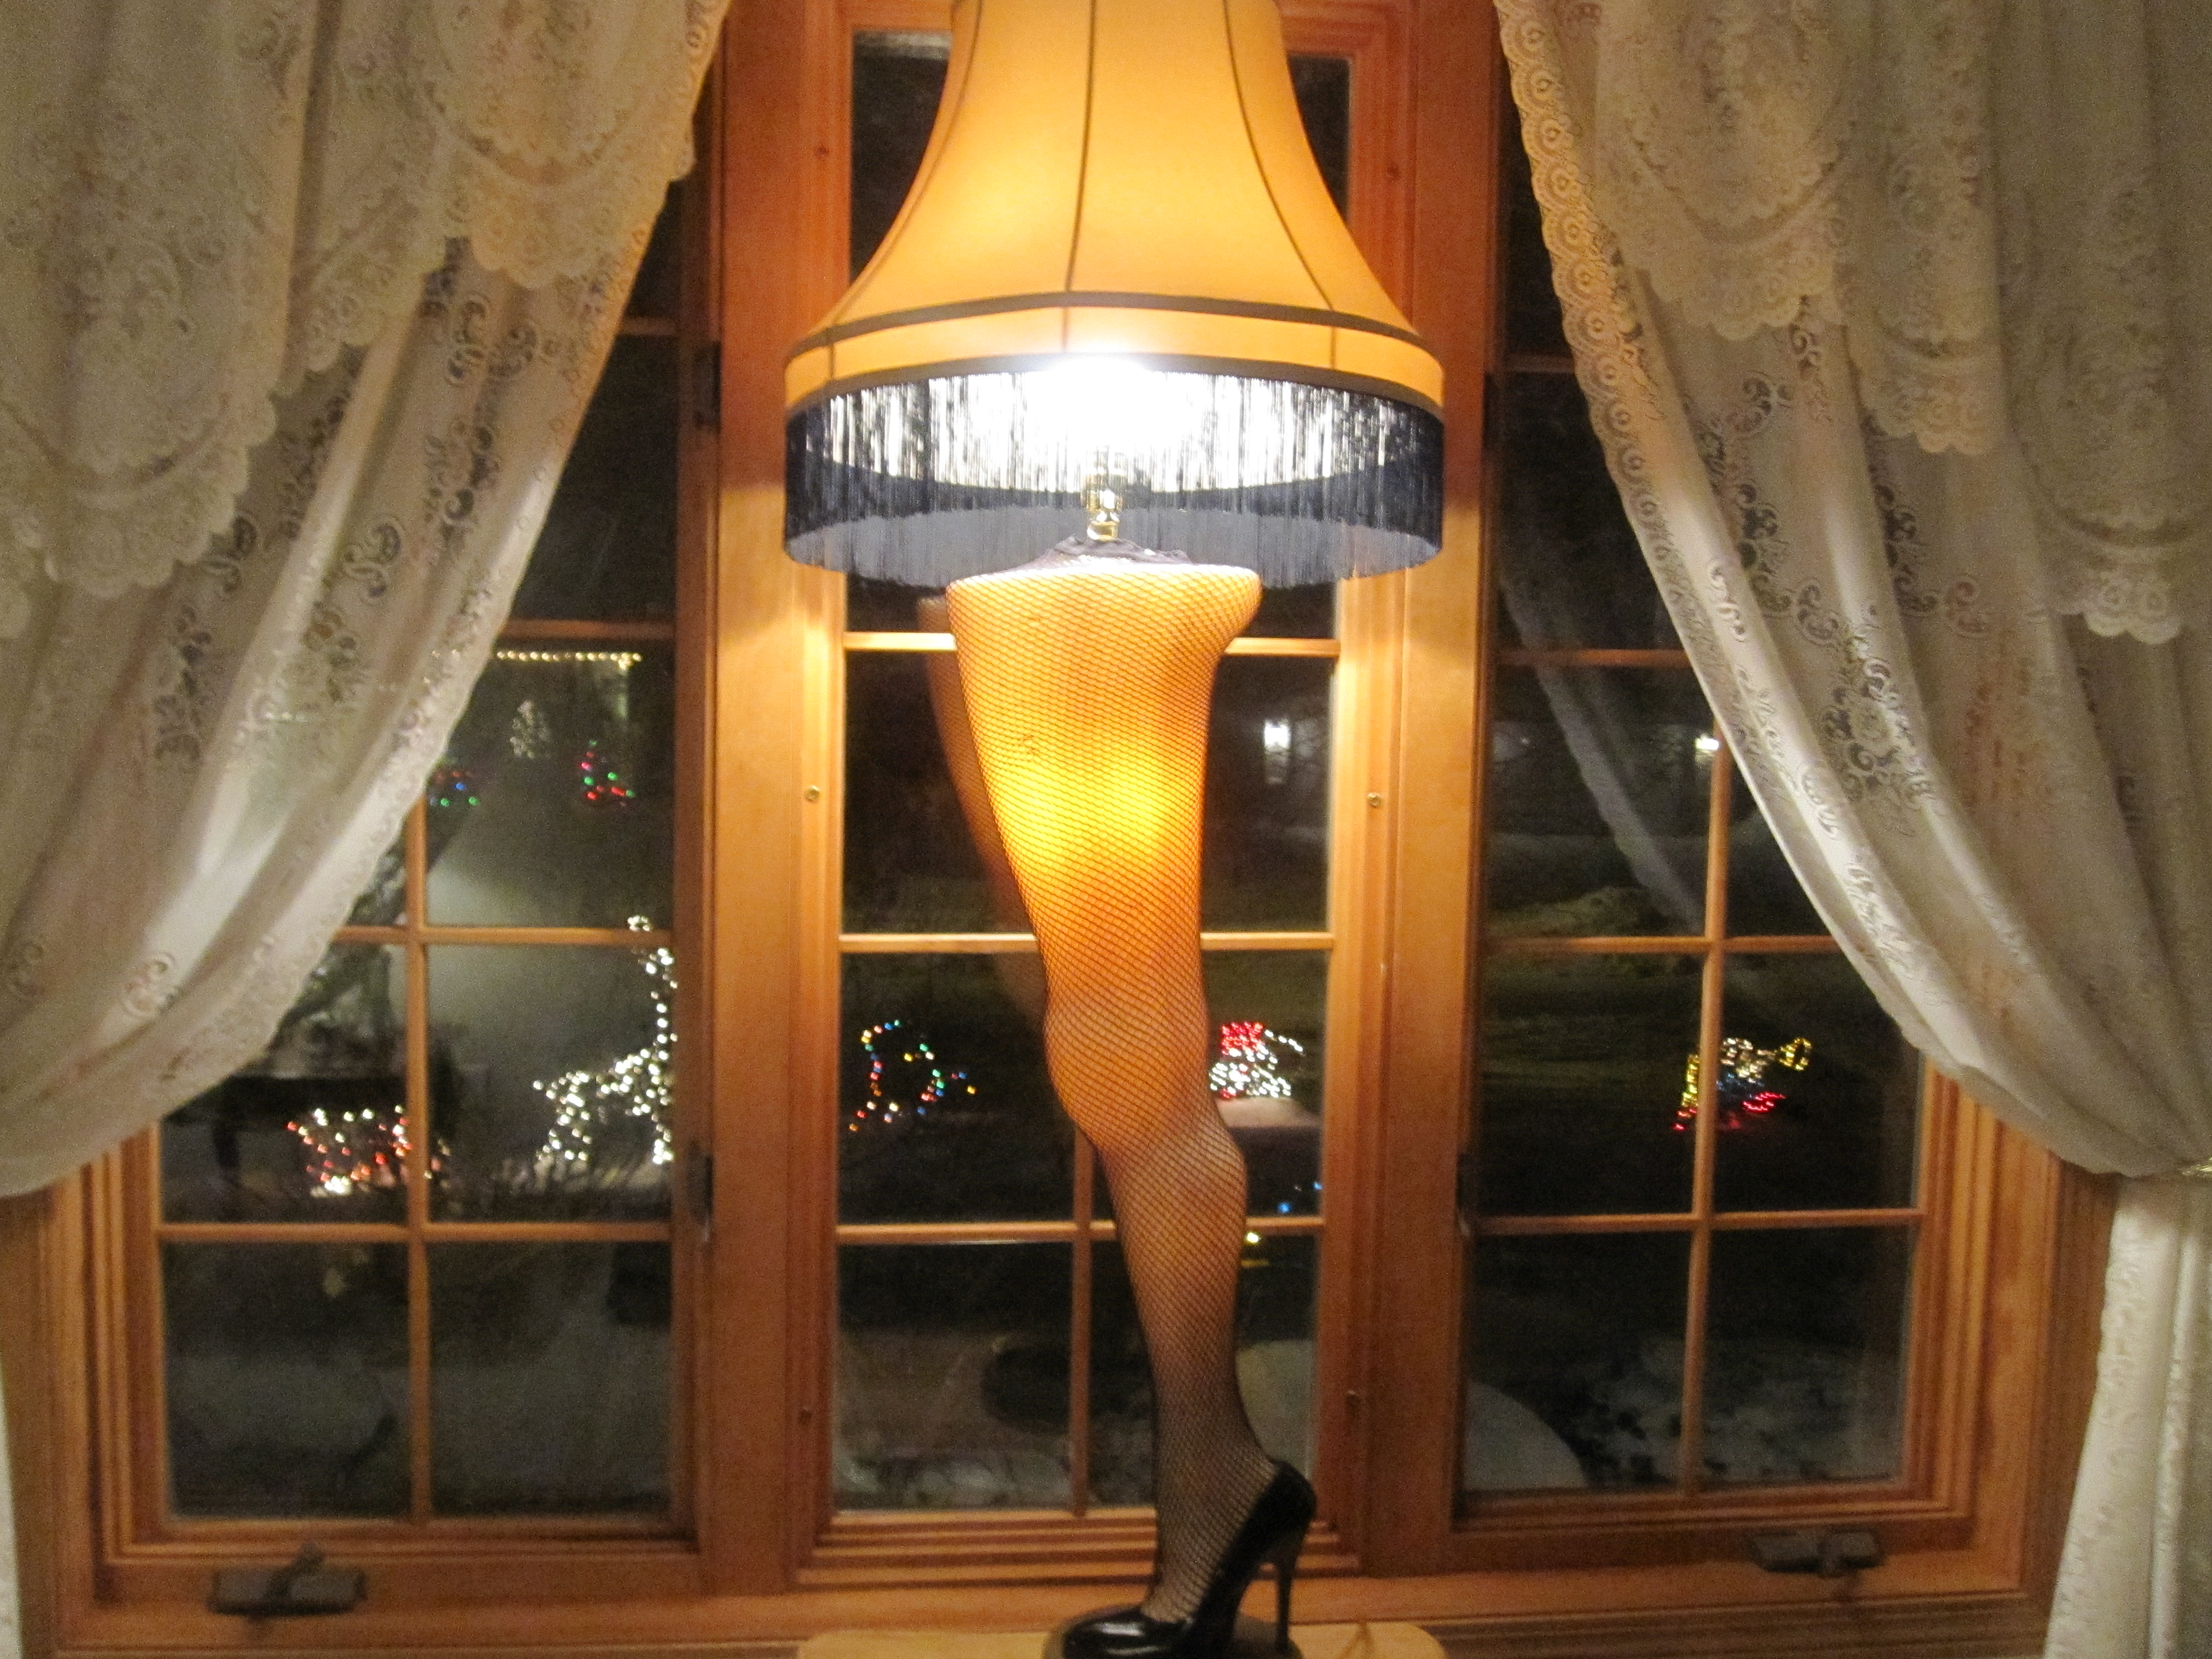 High Quality ... Infamous Leg Lamp?